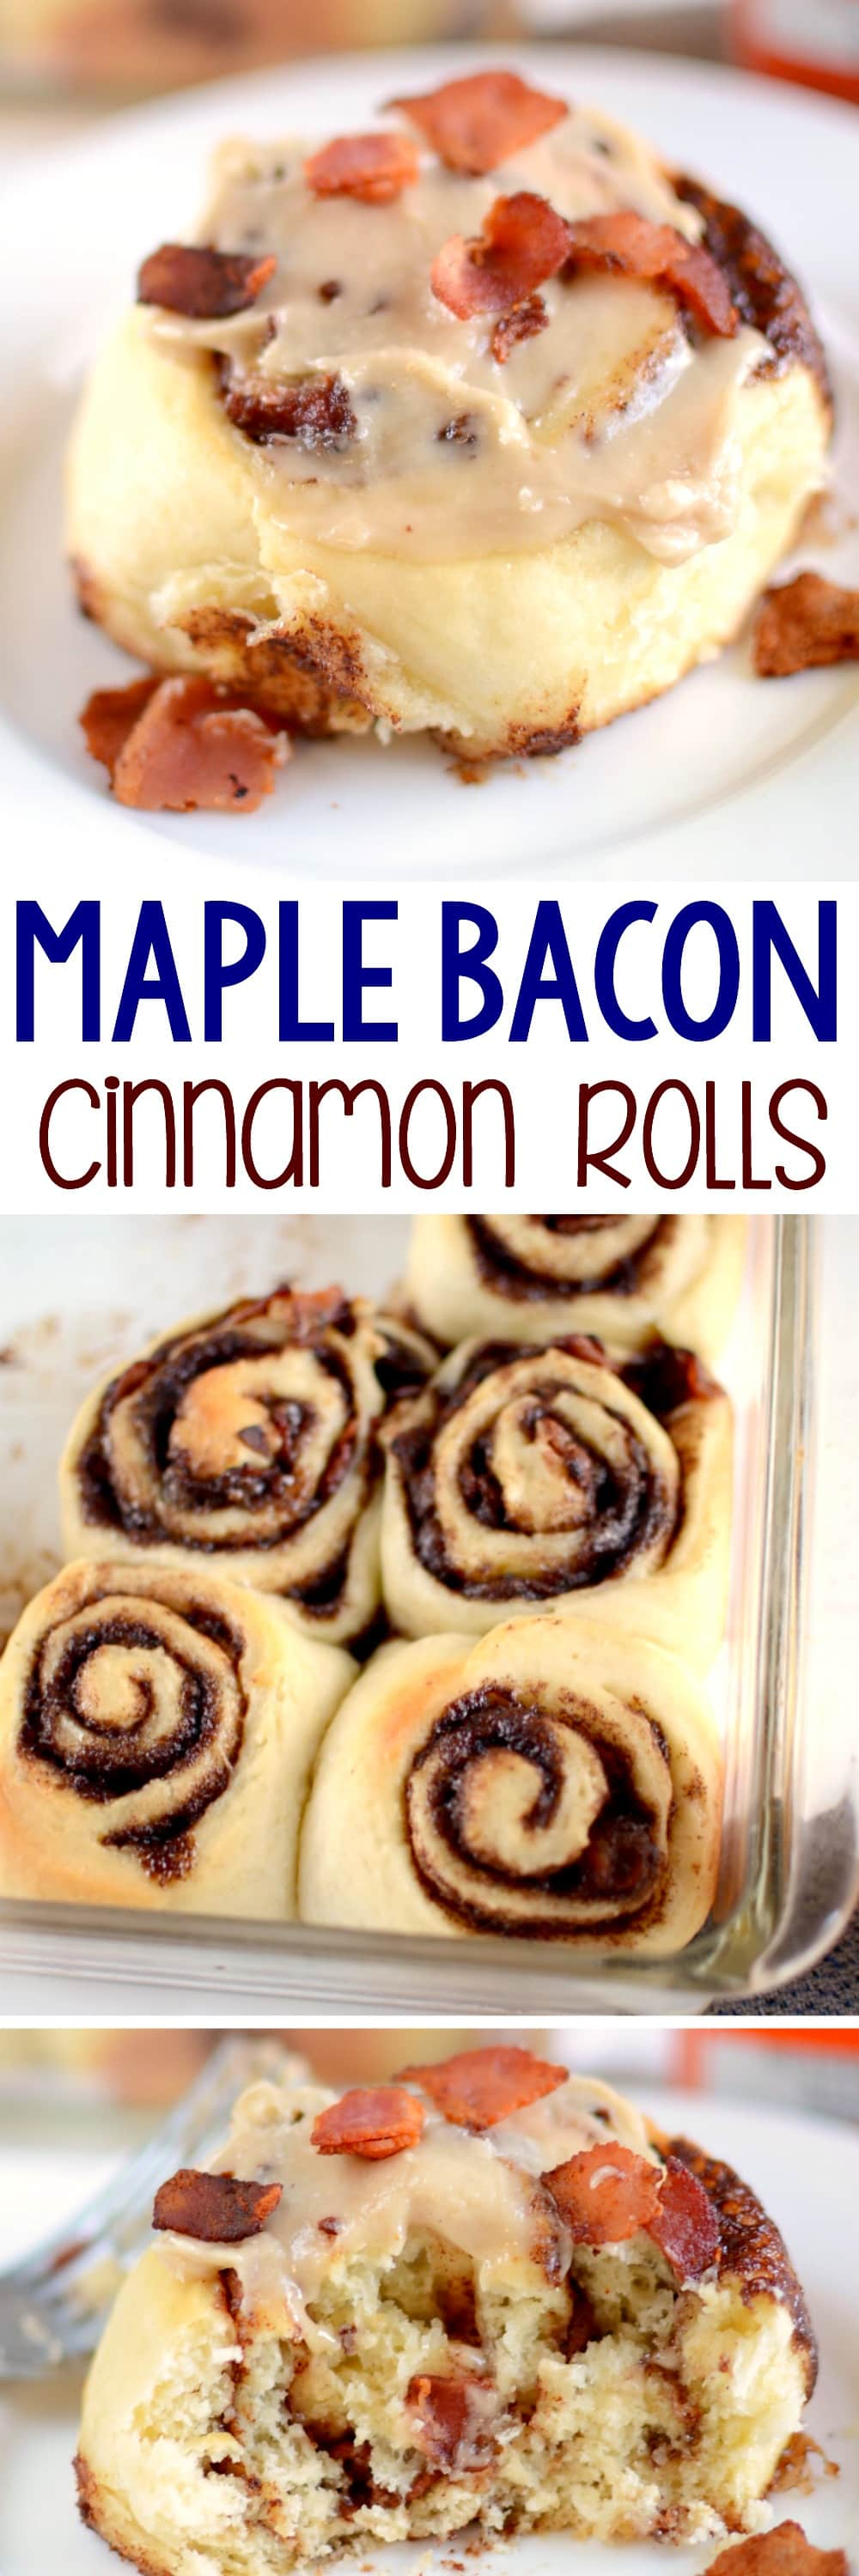 Bacon Maple Cinnamon Rolls - this easy cinnamon roll recipe has super fluffy dough filled with a buttery brown sugar mixture and BACON! The maple syrup glaze is perfect with the bacon on top! Homemade cinnamon rolls are so easy!